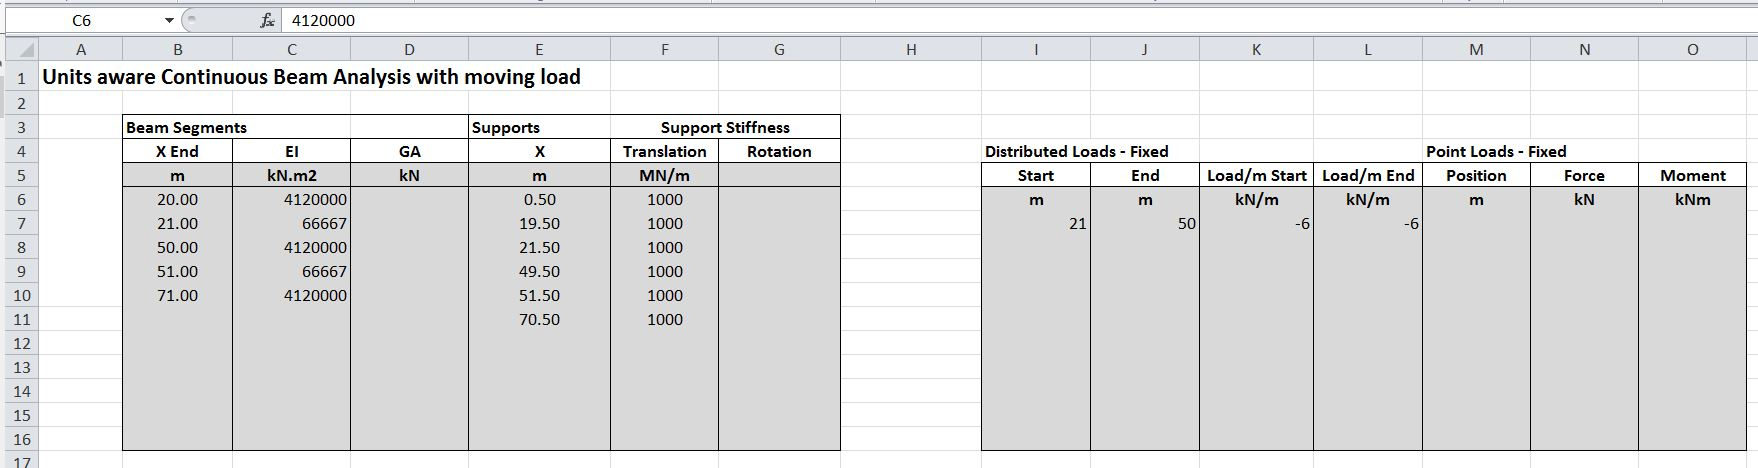 Axle Load Calculation Spreadsheet Throughout Continuous Beam Spreadsheet With Moving Load  Newton Excel Bach Axle Load Calculation Spreadsheet Printable Spreadshee Printable Spreadshee axle load calculation xls